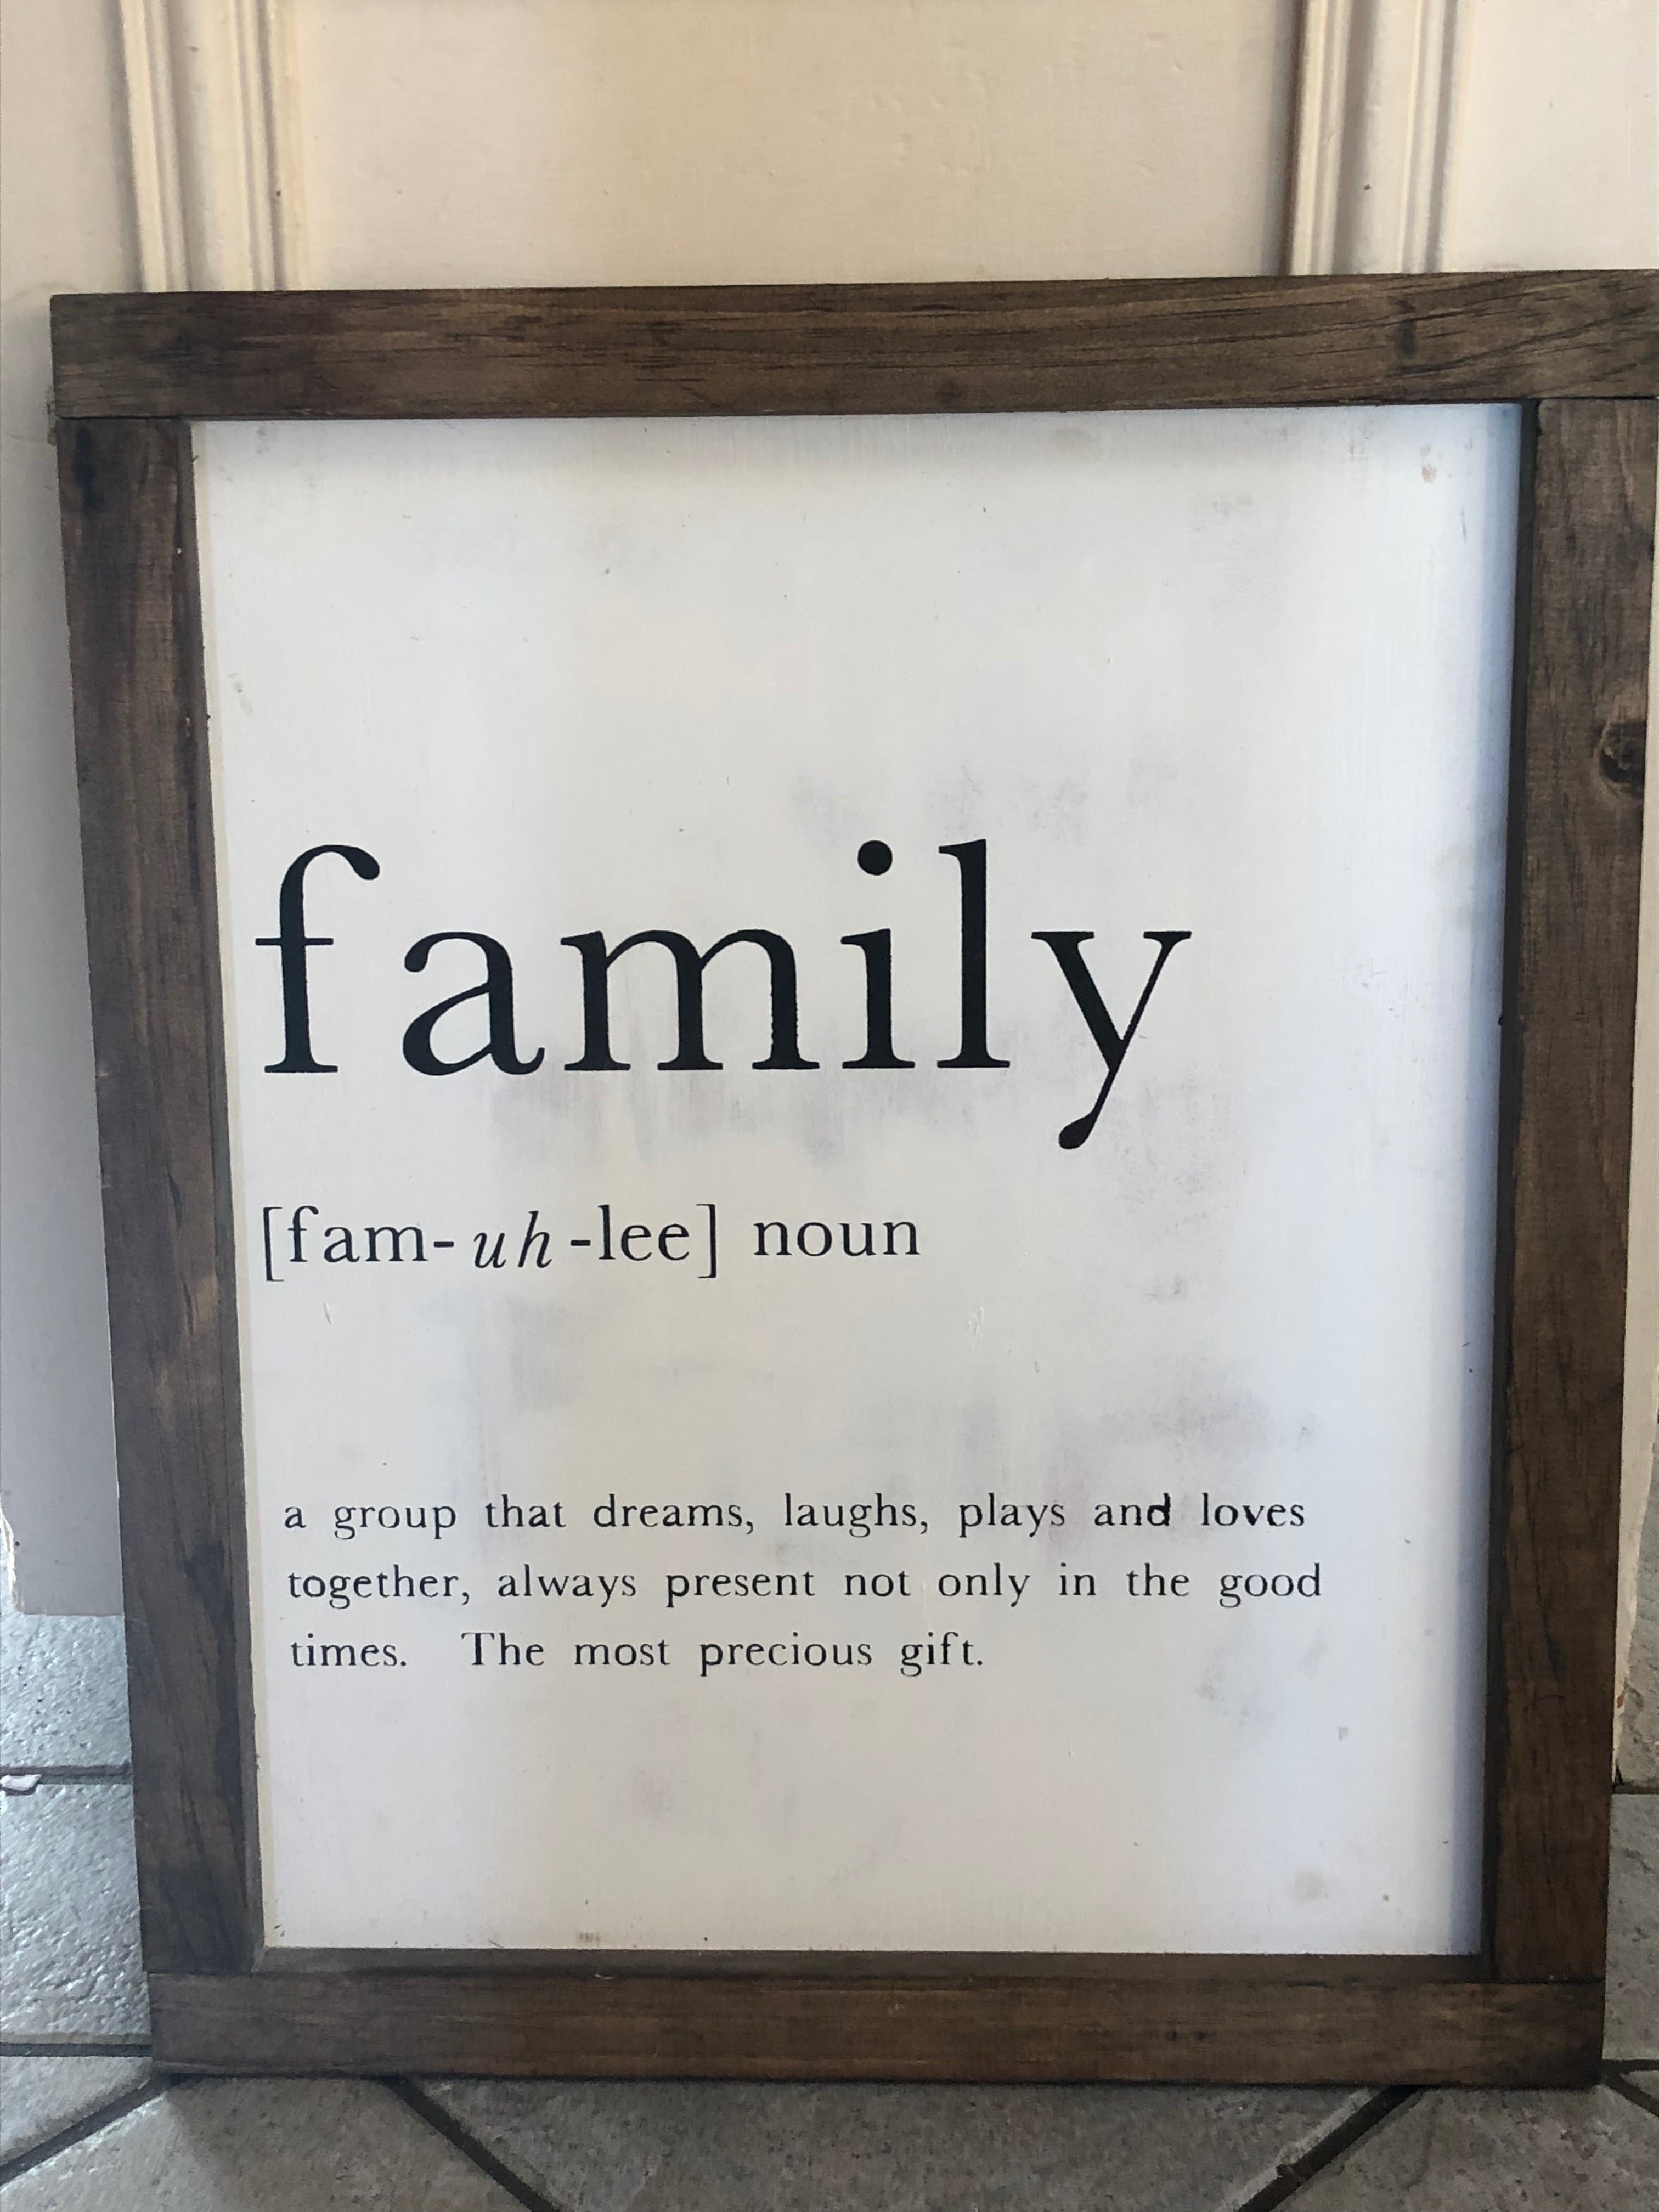 Family: Definition